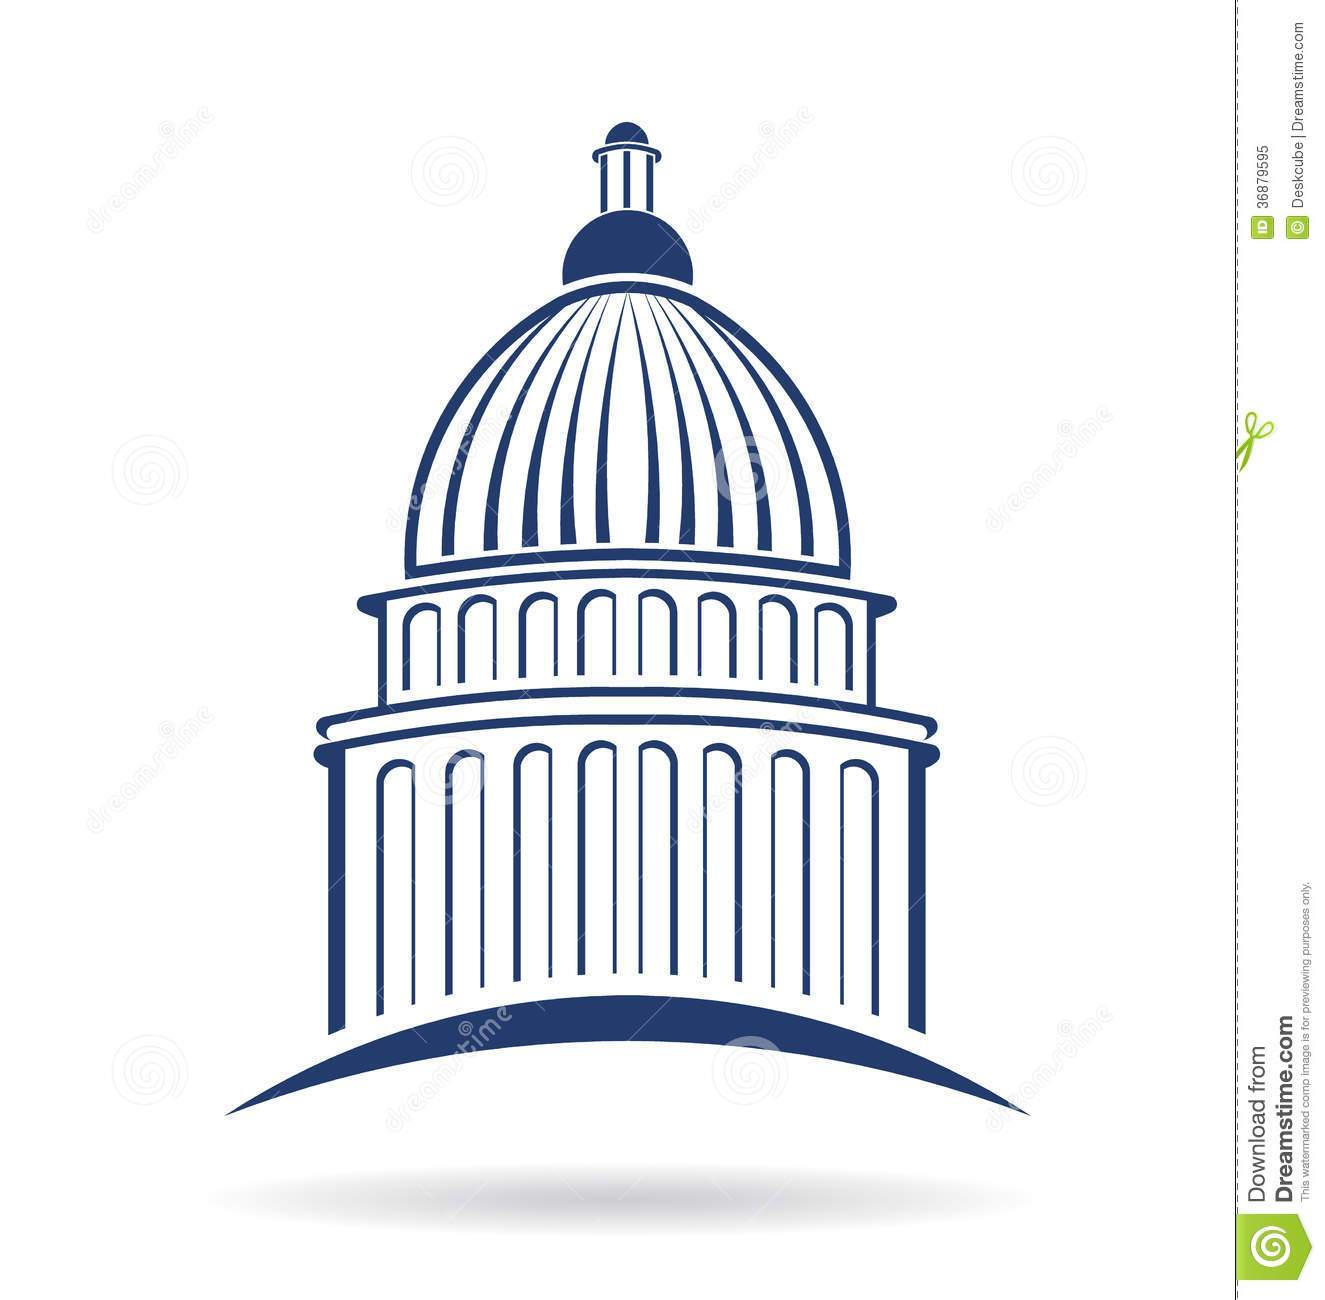 State capitol clipart 6 » Clipart Portal.